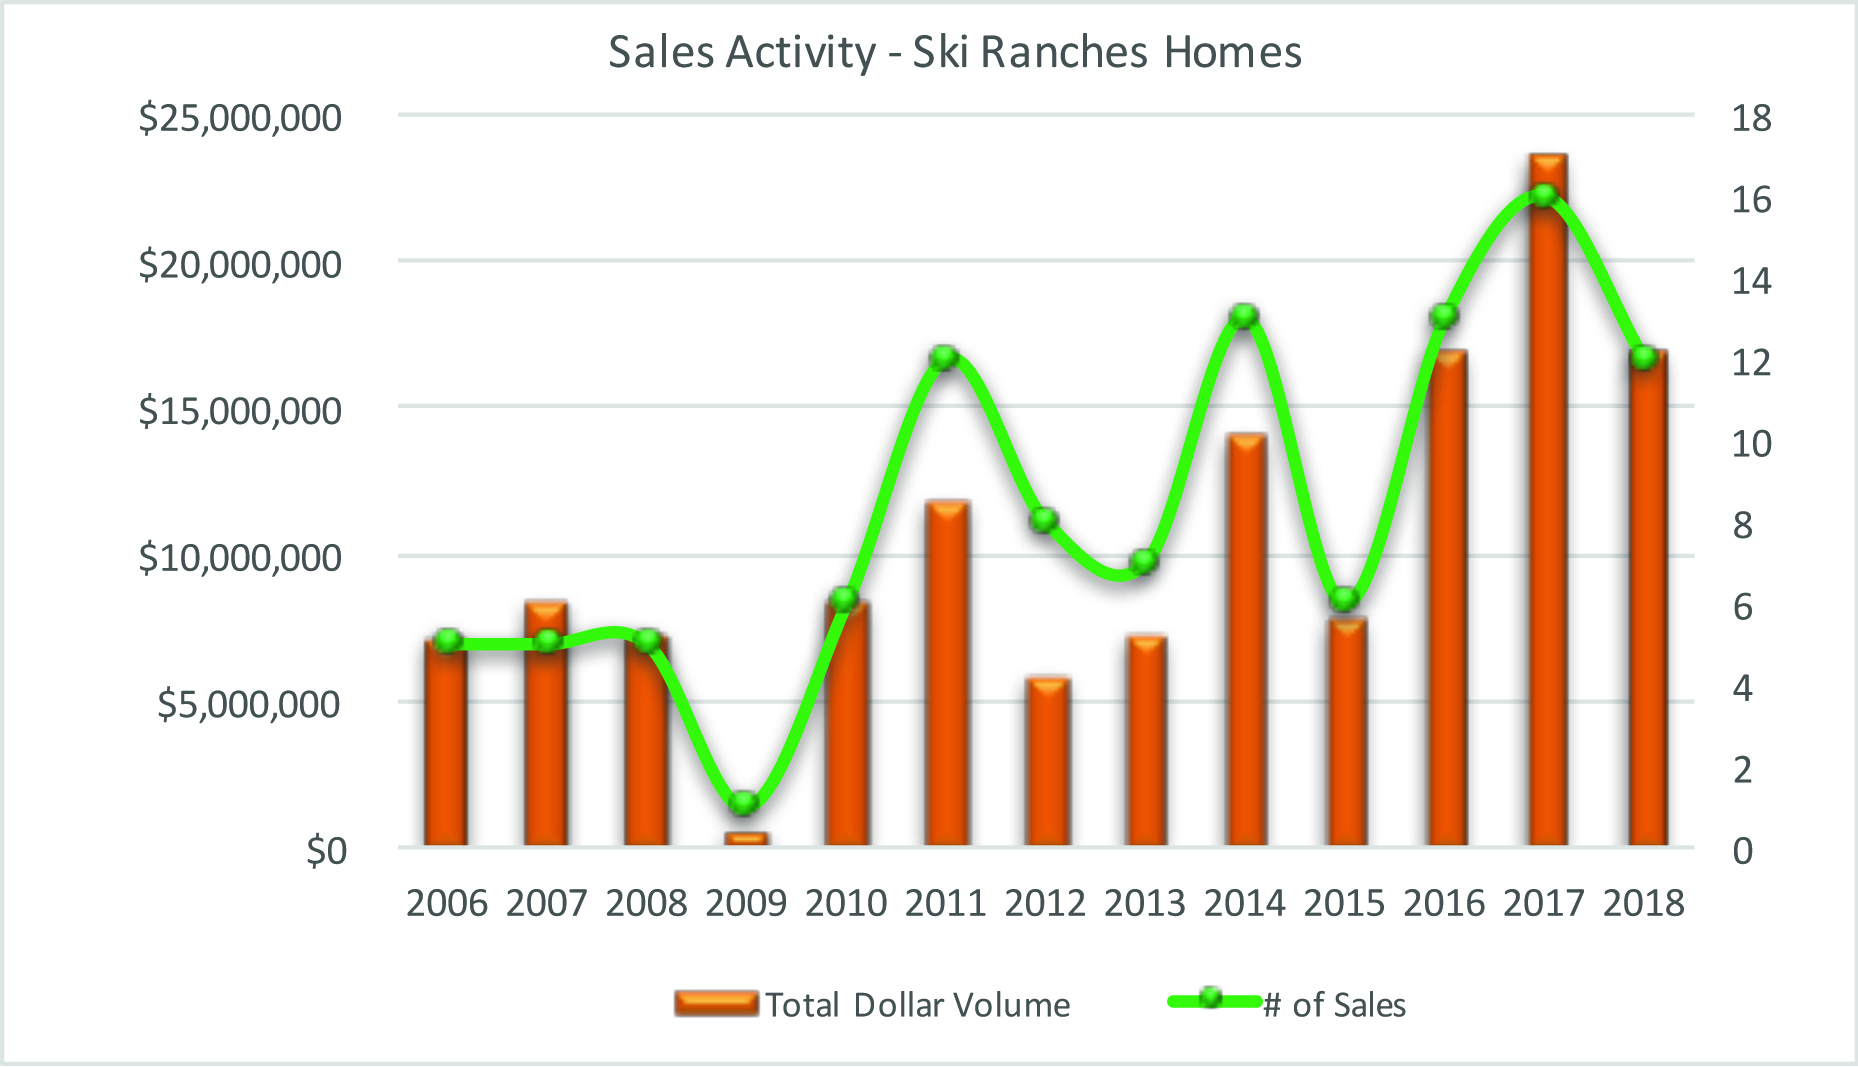 Ski Ranch Homes